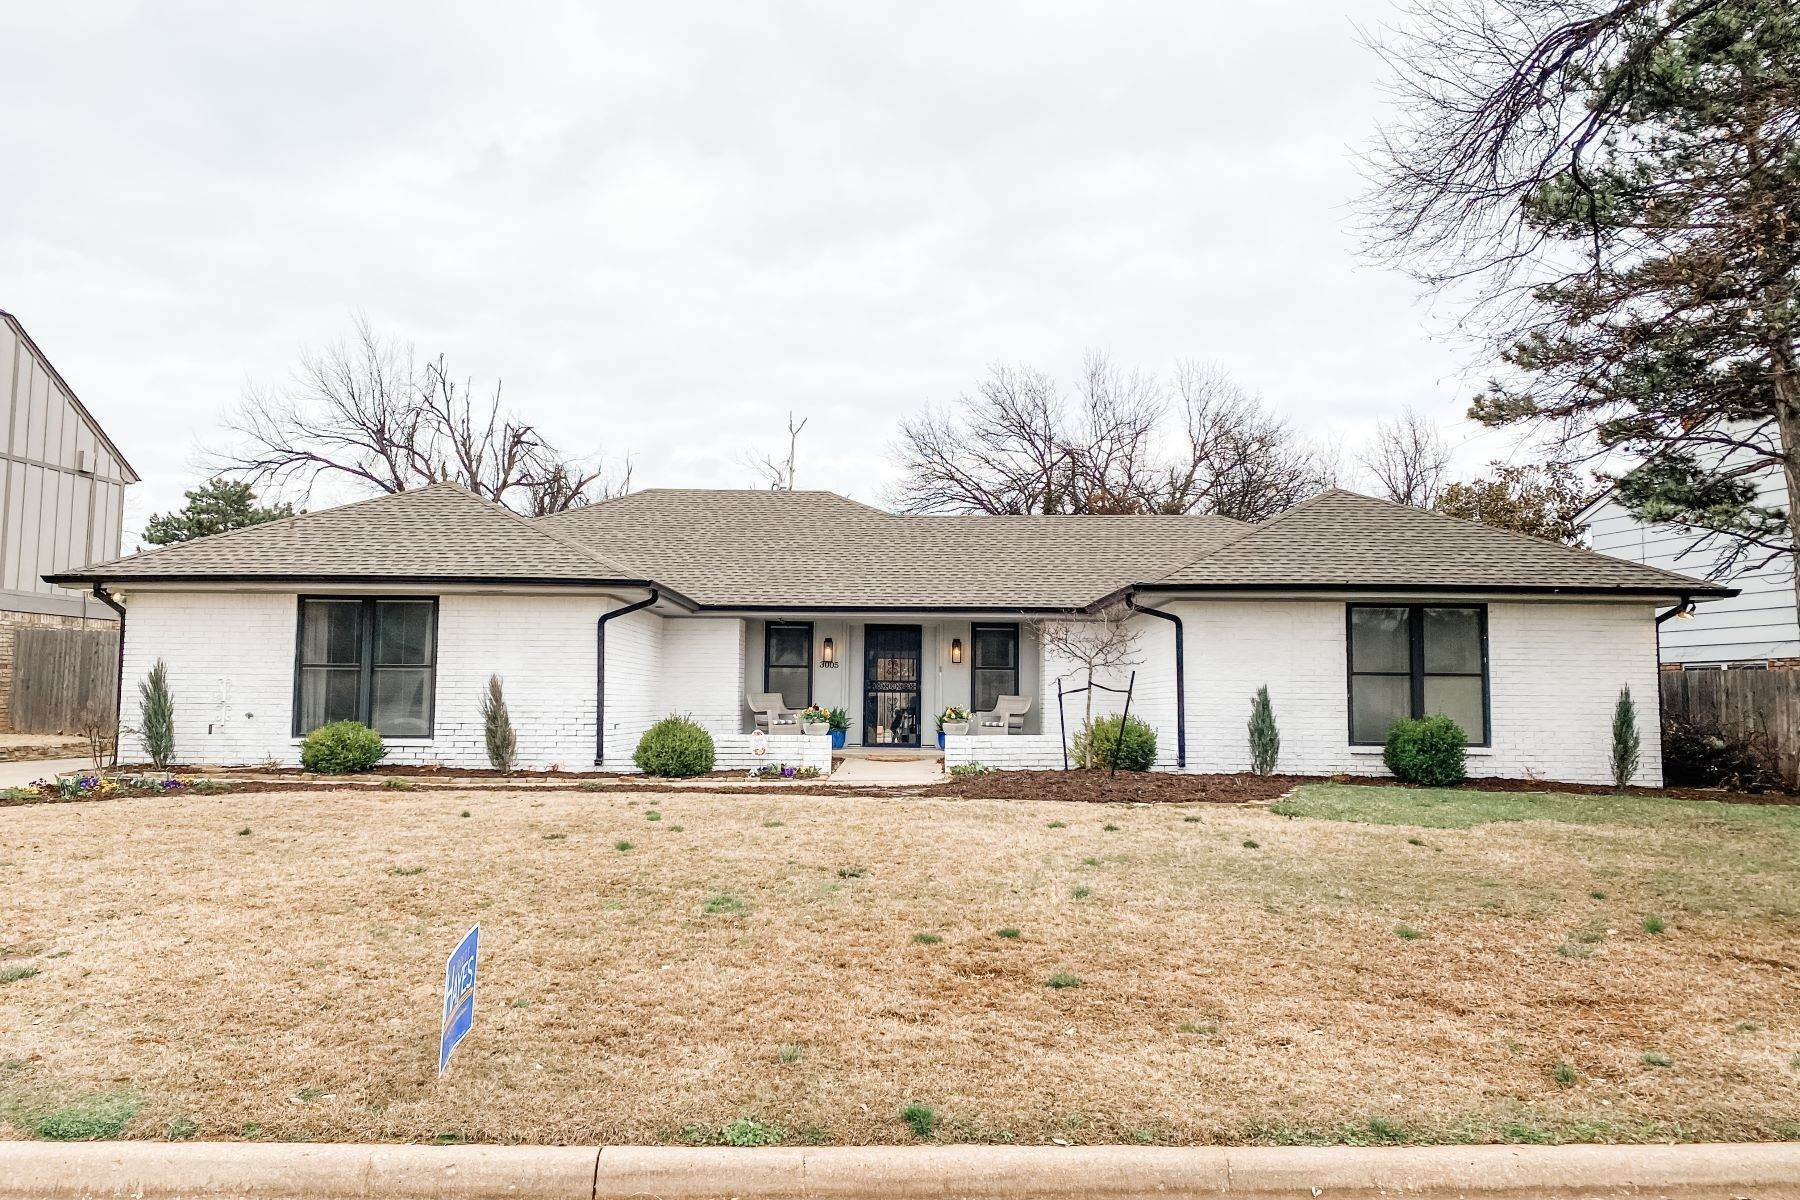 Single Family Homes for Sale at 3005 Stonybrook Road, Oklahoma City, OK 73120 3005 Stonybrook Road Oklahoma City, Oklahoma 73120 United States